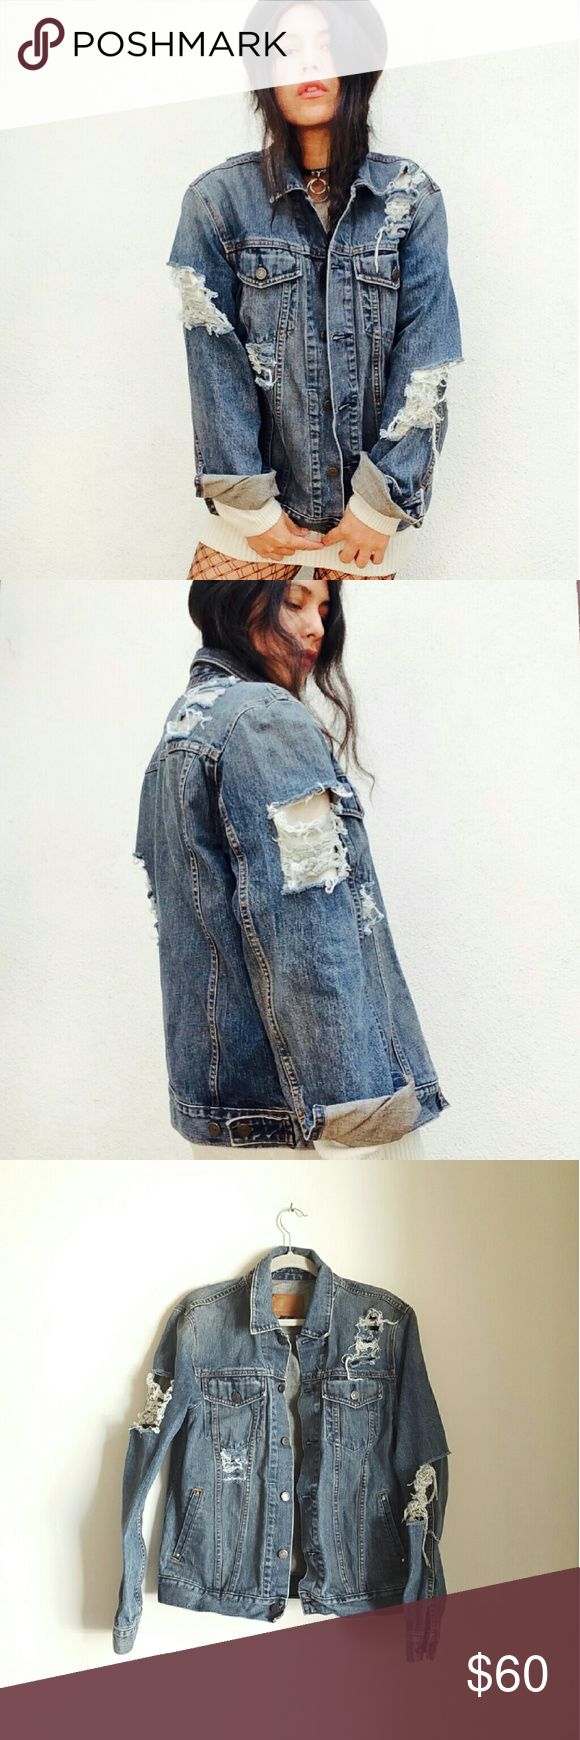 Vtg Y2K Gap grunge distressed jean denim bomber Vintage early 2000, Y2K, Gap denim bomber jacket, size M. 100% cotton.  I distressed with lots of love. It has been already cleaned and it would look cooler and cooler with each wash ?  In great vintage condition. Distressing, ripping and holes were hand made for a cool grunge look. One of a kind. Staple piece for any closet.  No trades Cool discounts on bundles    Tags Vintage retro 2000 millennium y2k gap jean denim bomber coat jacket goth…